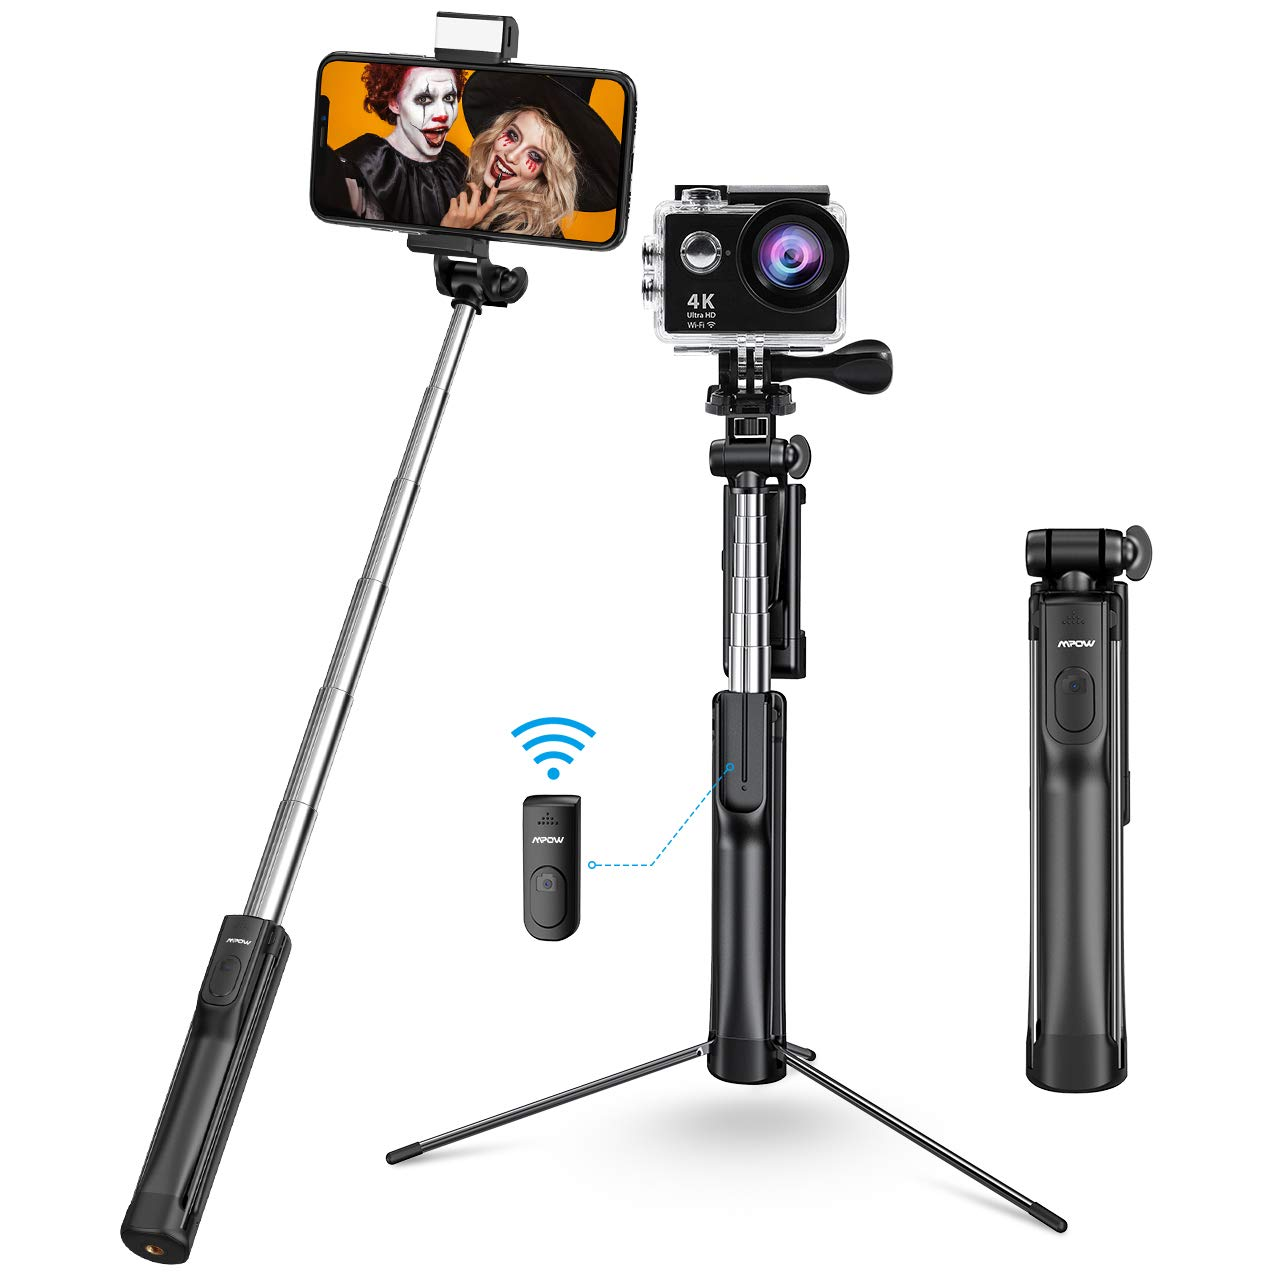 Top 10 Best Selfie Stick (2020 Reviews & Buying Guide) 3